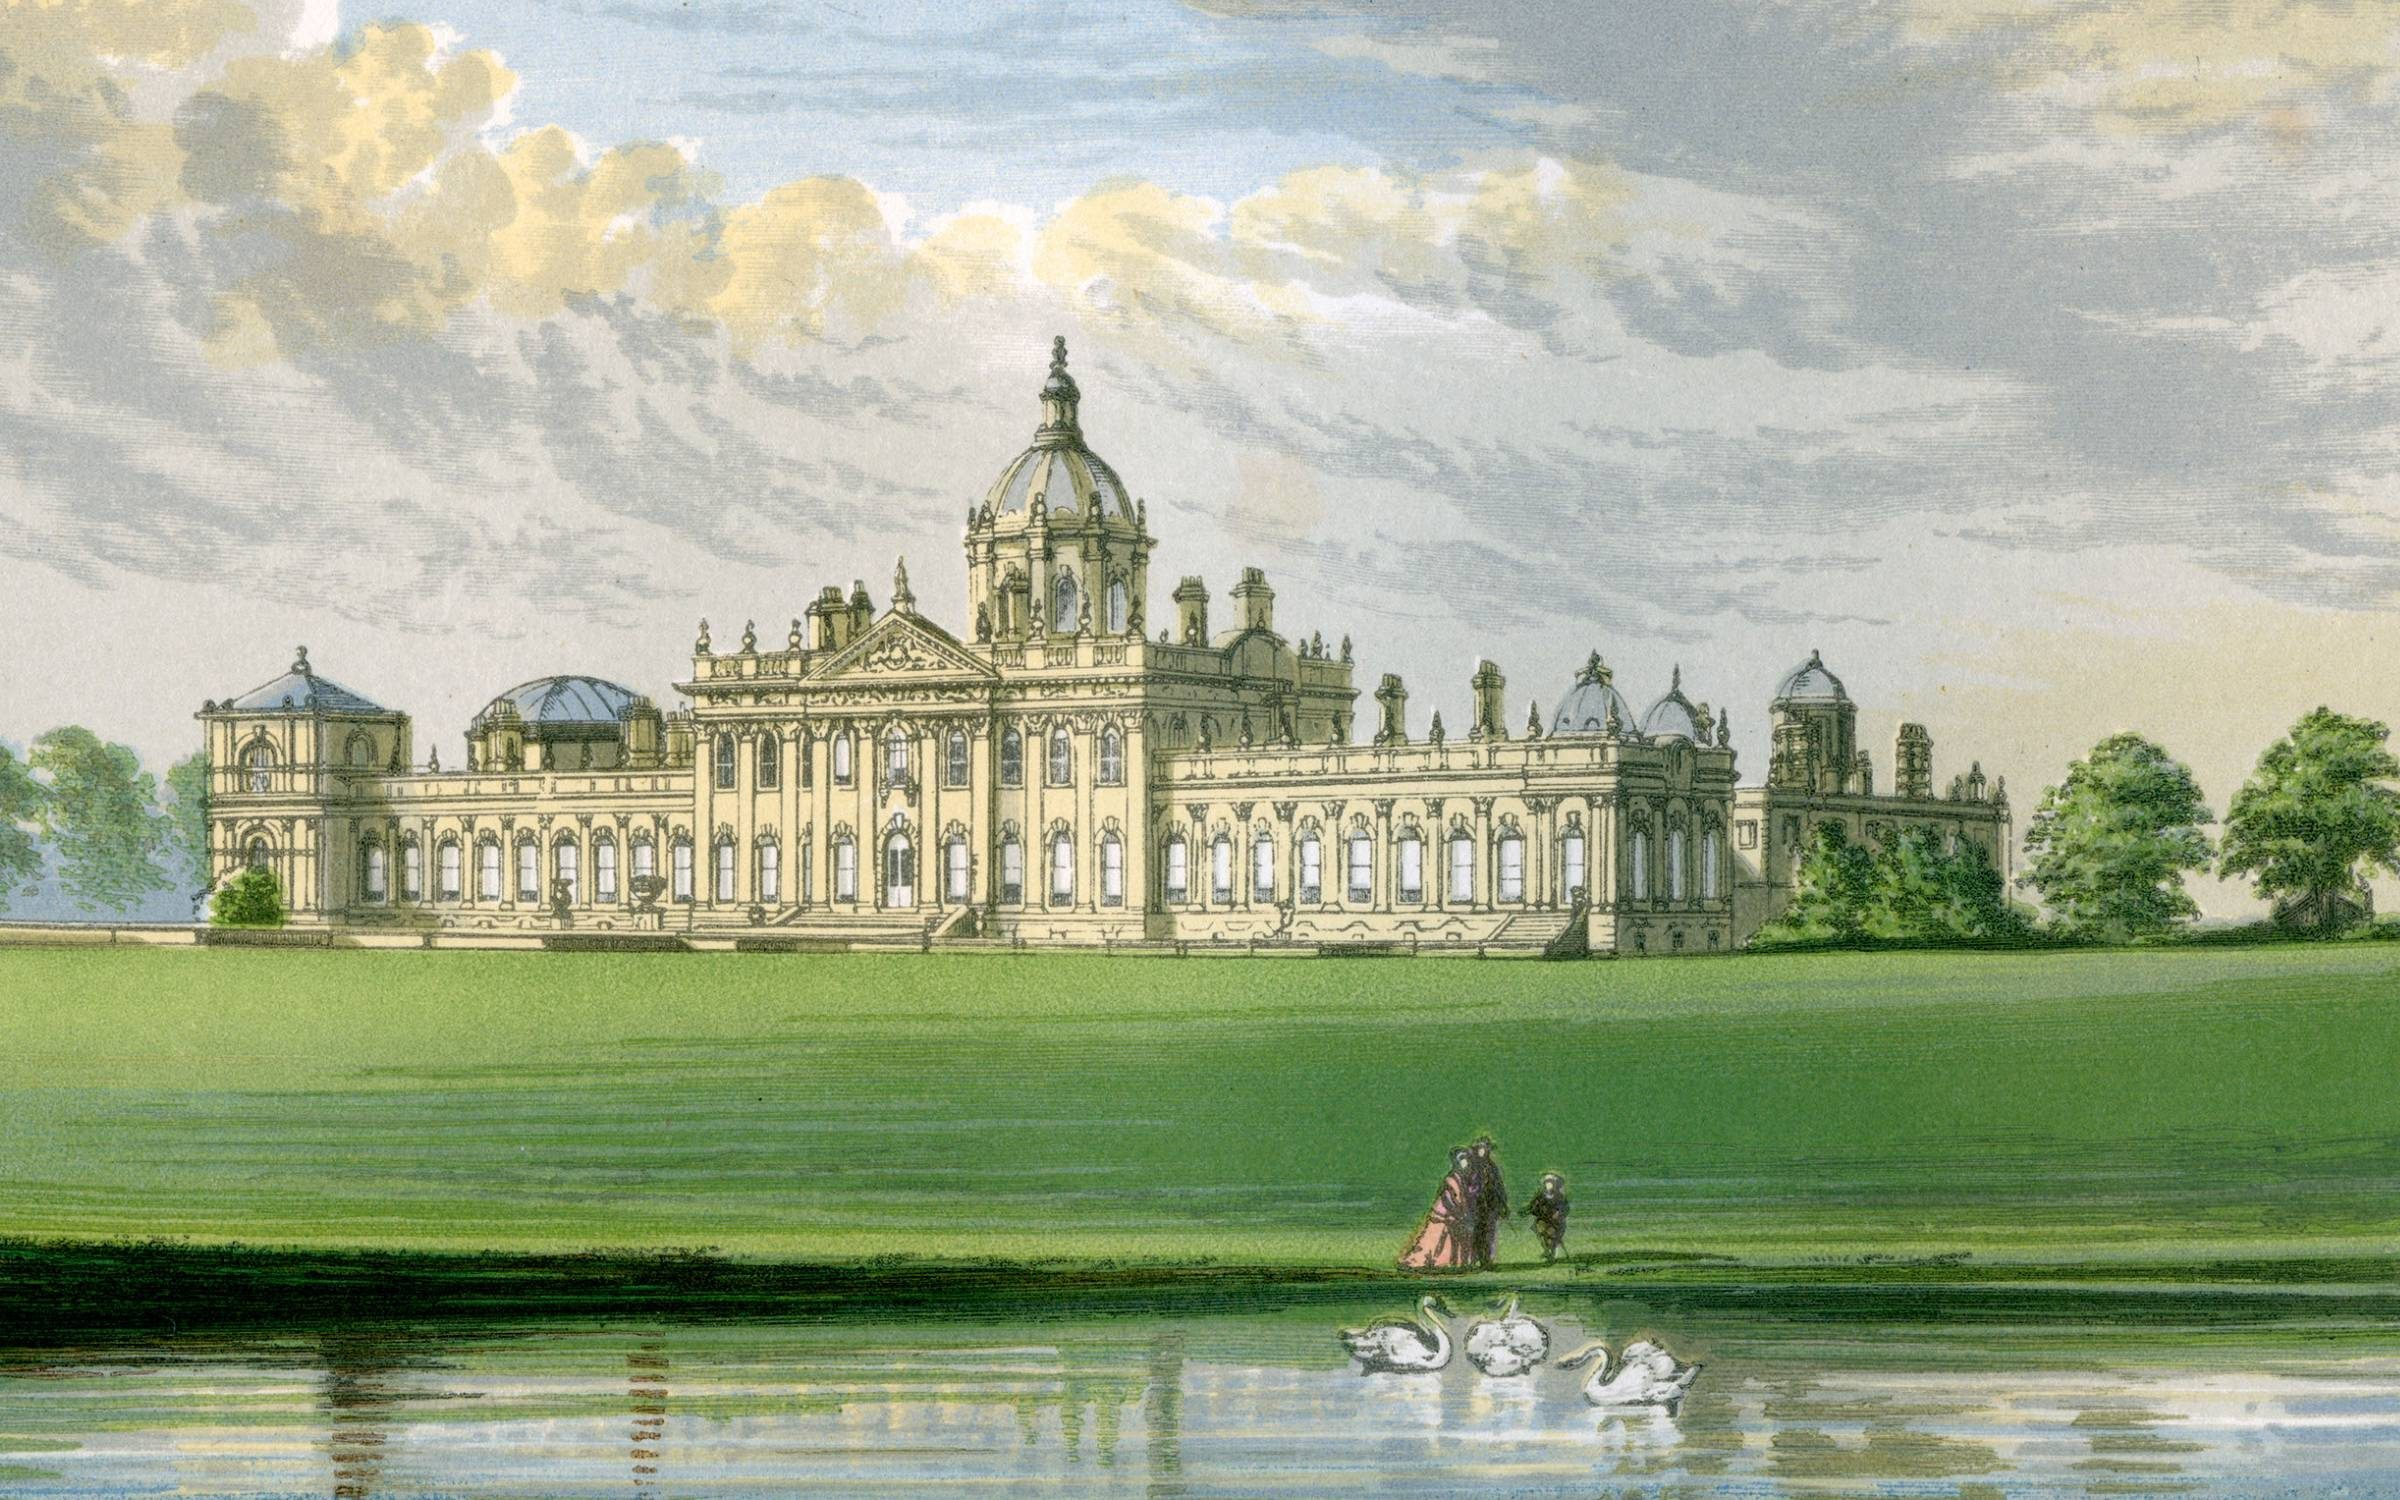 Castle Howard, Yorkshire, home of the Earl of Carlisle, c1880. Castle Howard was built between 1699 and 1712 to designs by John Vanbrugh. A print from A Series of Picturesque Views of Seats of the Noblemen and Gentlemen of Great Britain and Ireland, edited by Reverend FO Morris, Volume I, William Mackenzie, London, c1880. Wood-engraved plates after paintings by Benjamin Fawcett and Alexander Francis Lydon. (Photo by The Print Collector/Print Collector/Getty Images)